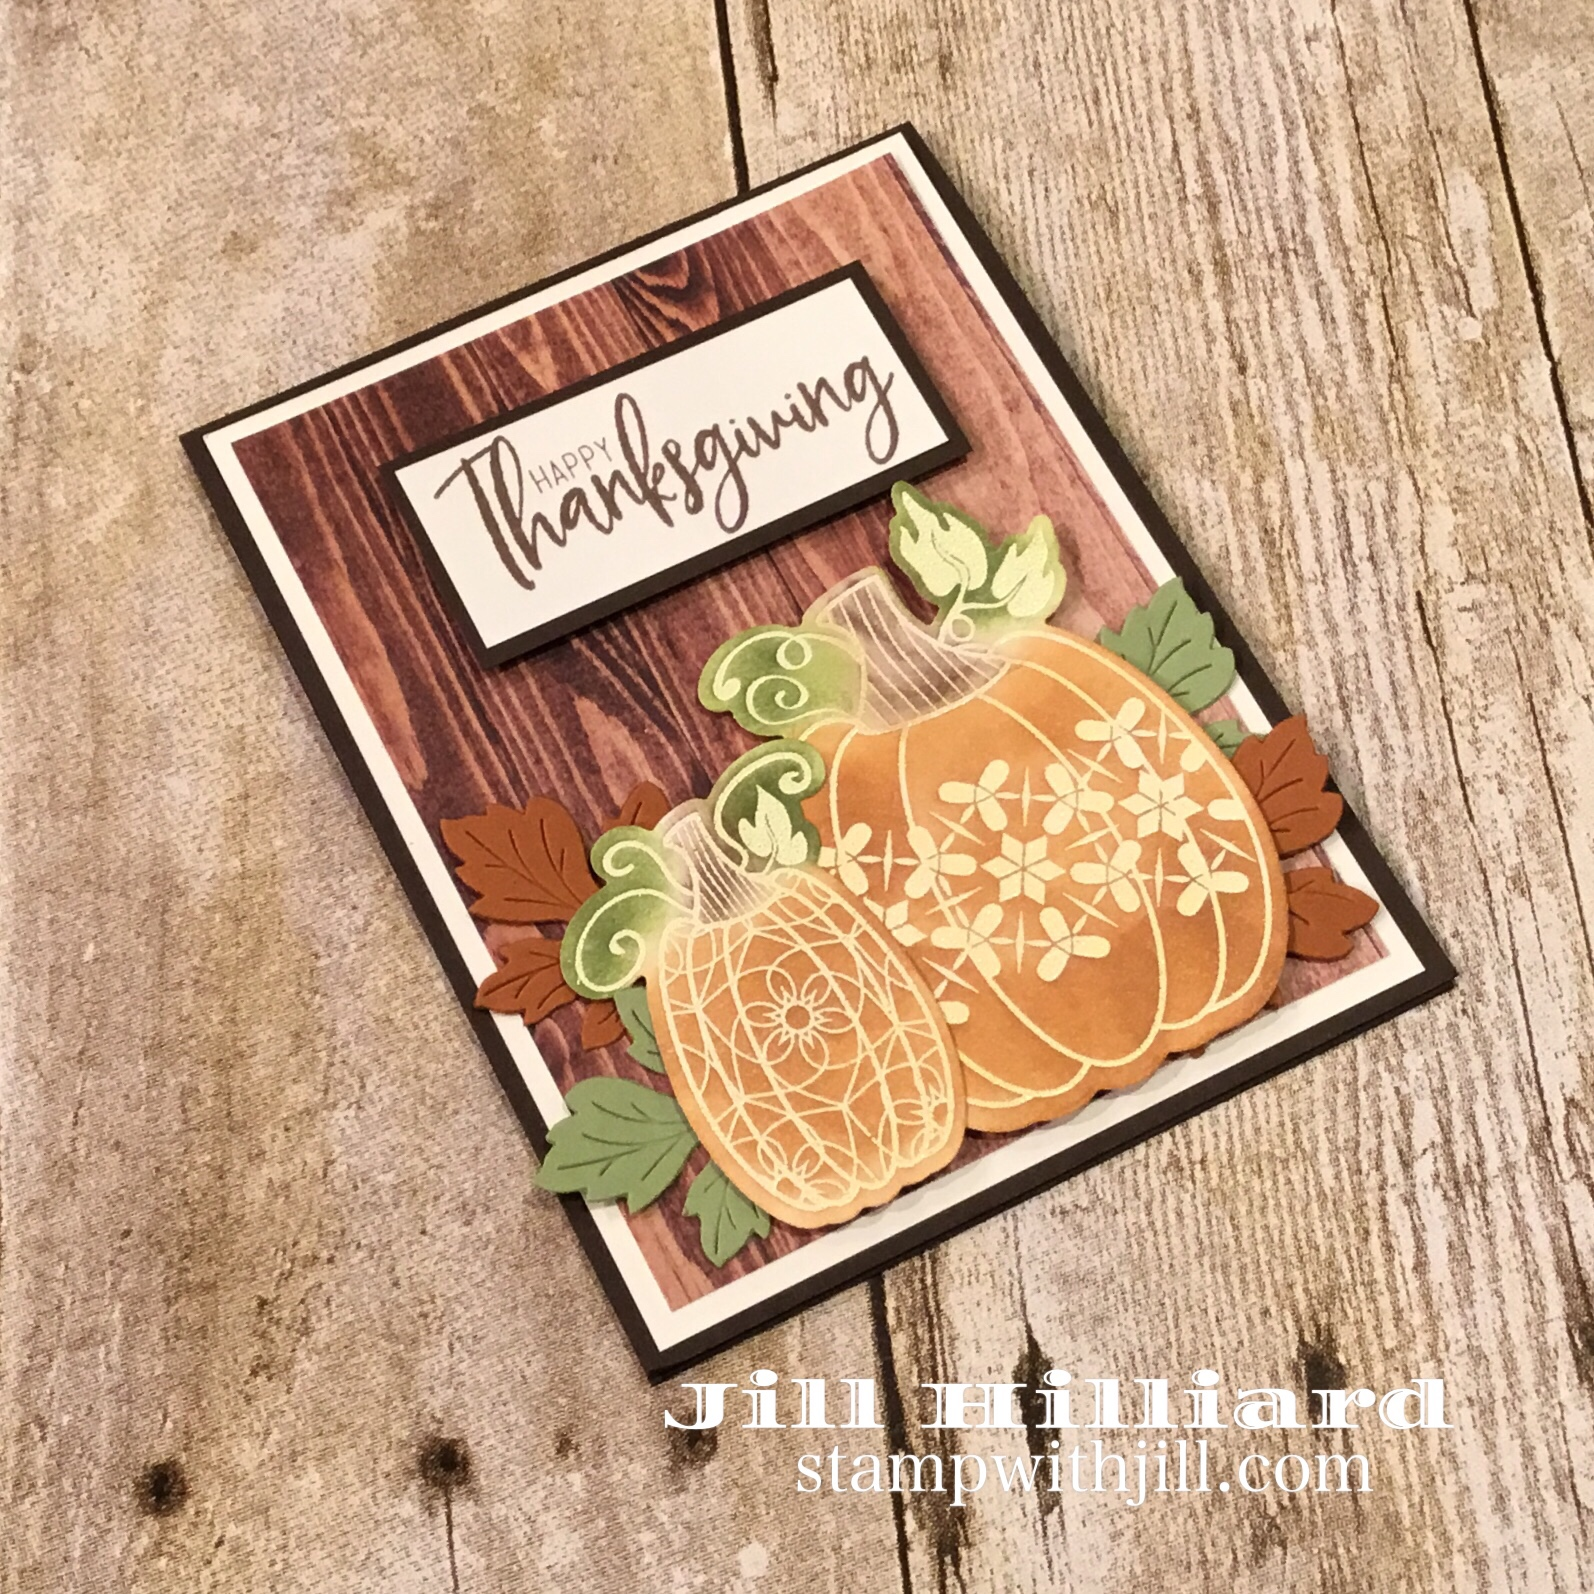 Martha's Pumpkins, Fun Stampers Journey, Jills Card creations